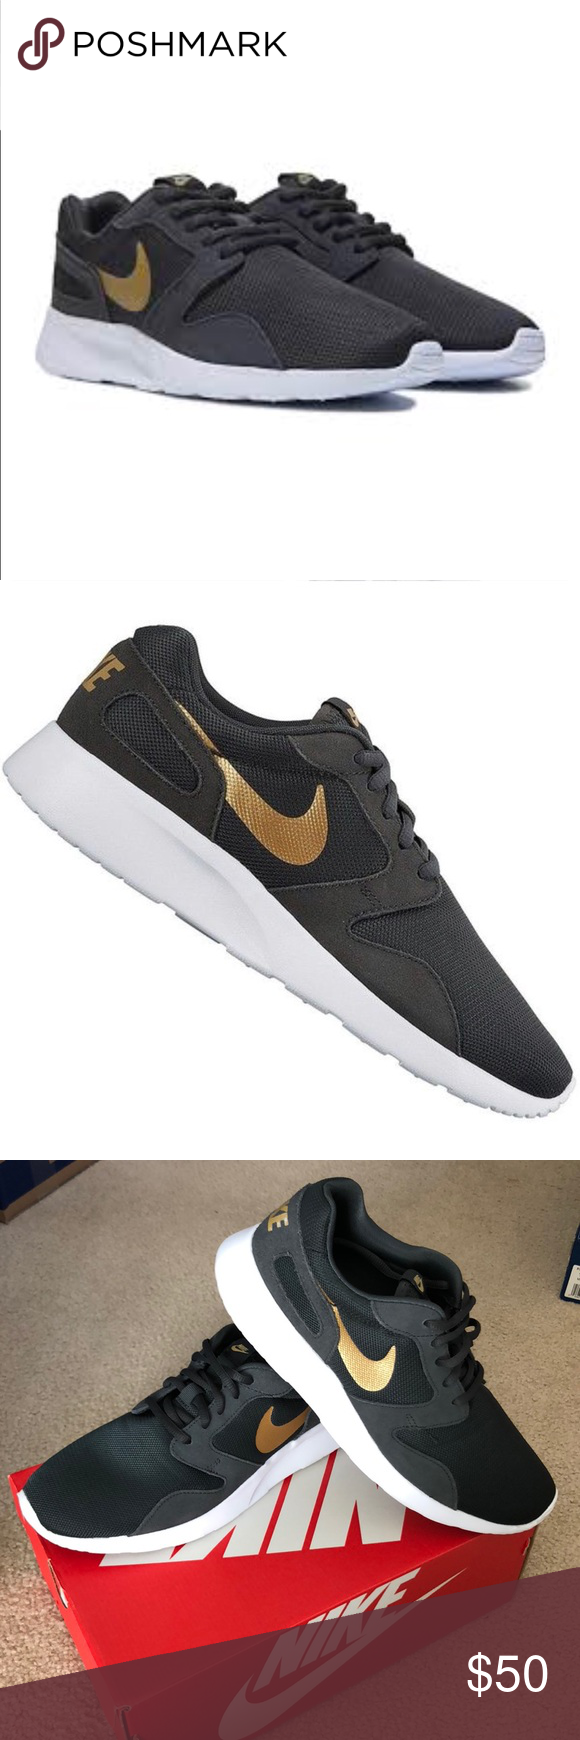 new style 054d4 984dd Women s Nike Kaishi Sneakers Women s Nike Kaishi Like new - very clean  (only worn twice) Size 11.5 in box Gray and gold Extra (gold color)  shoestrings ...